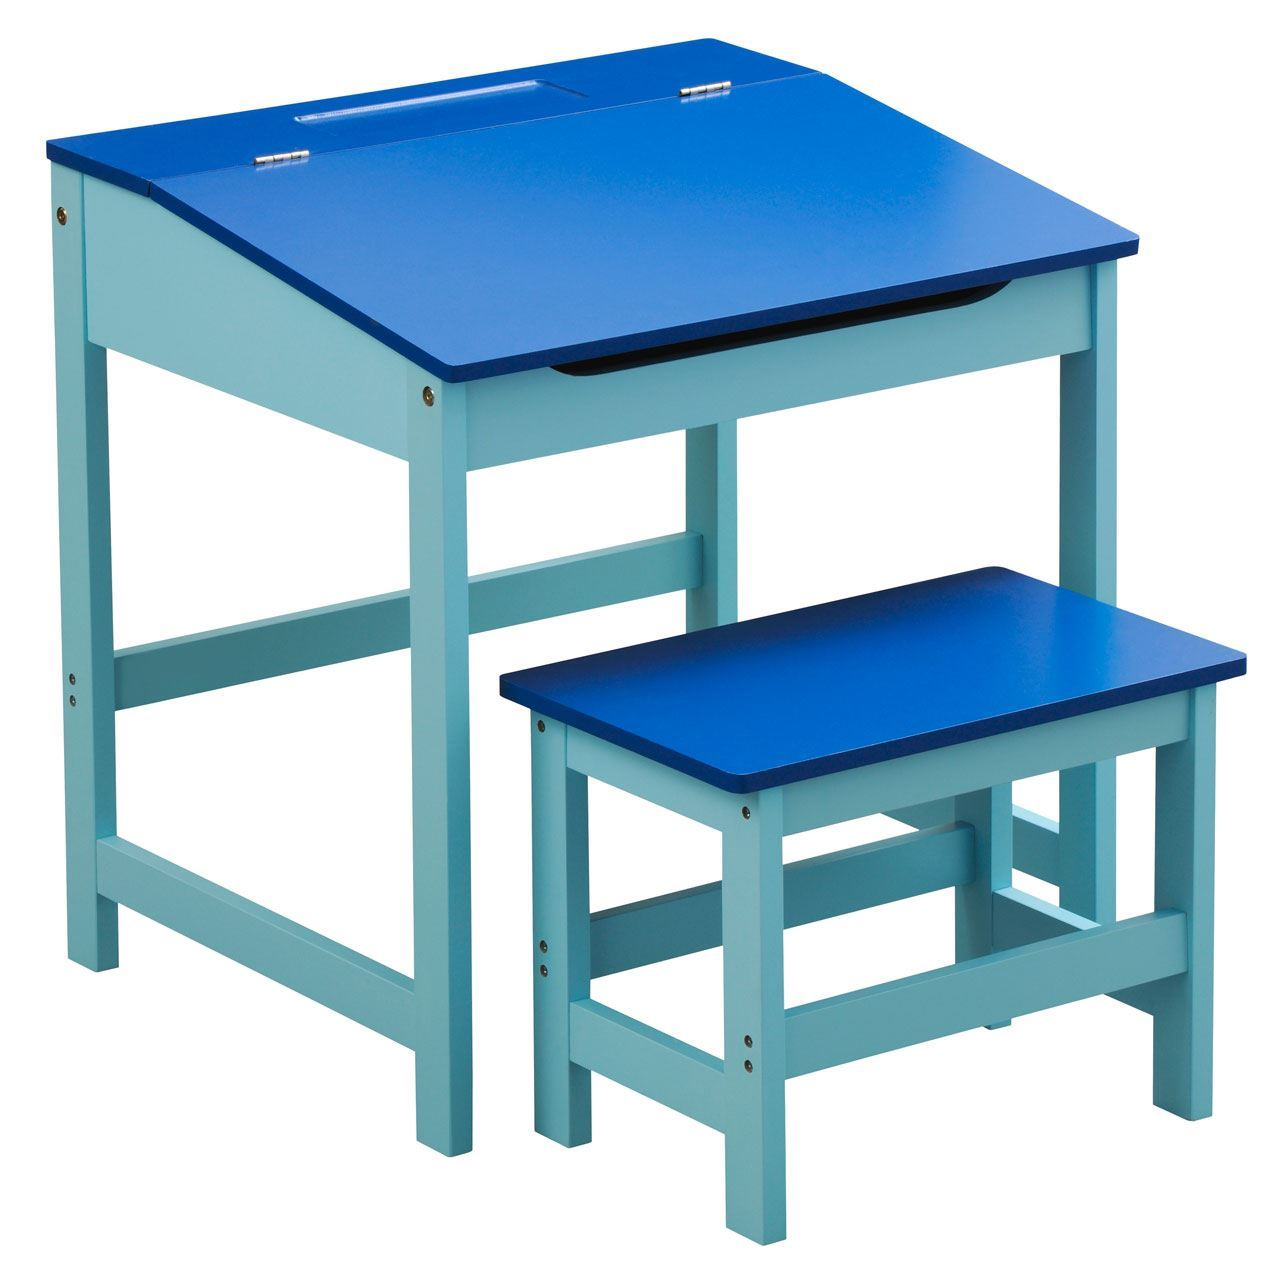 Study Table Chair Set : , Furniture & DIY > Childrens Home & Furniture > Furniture...